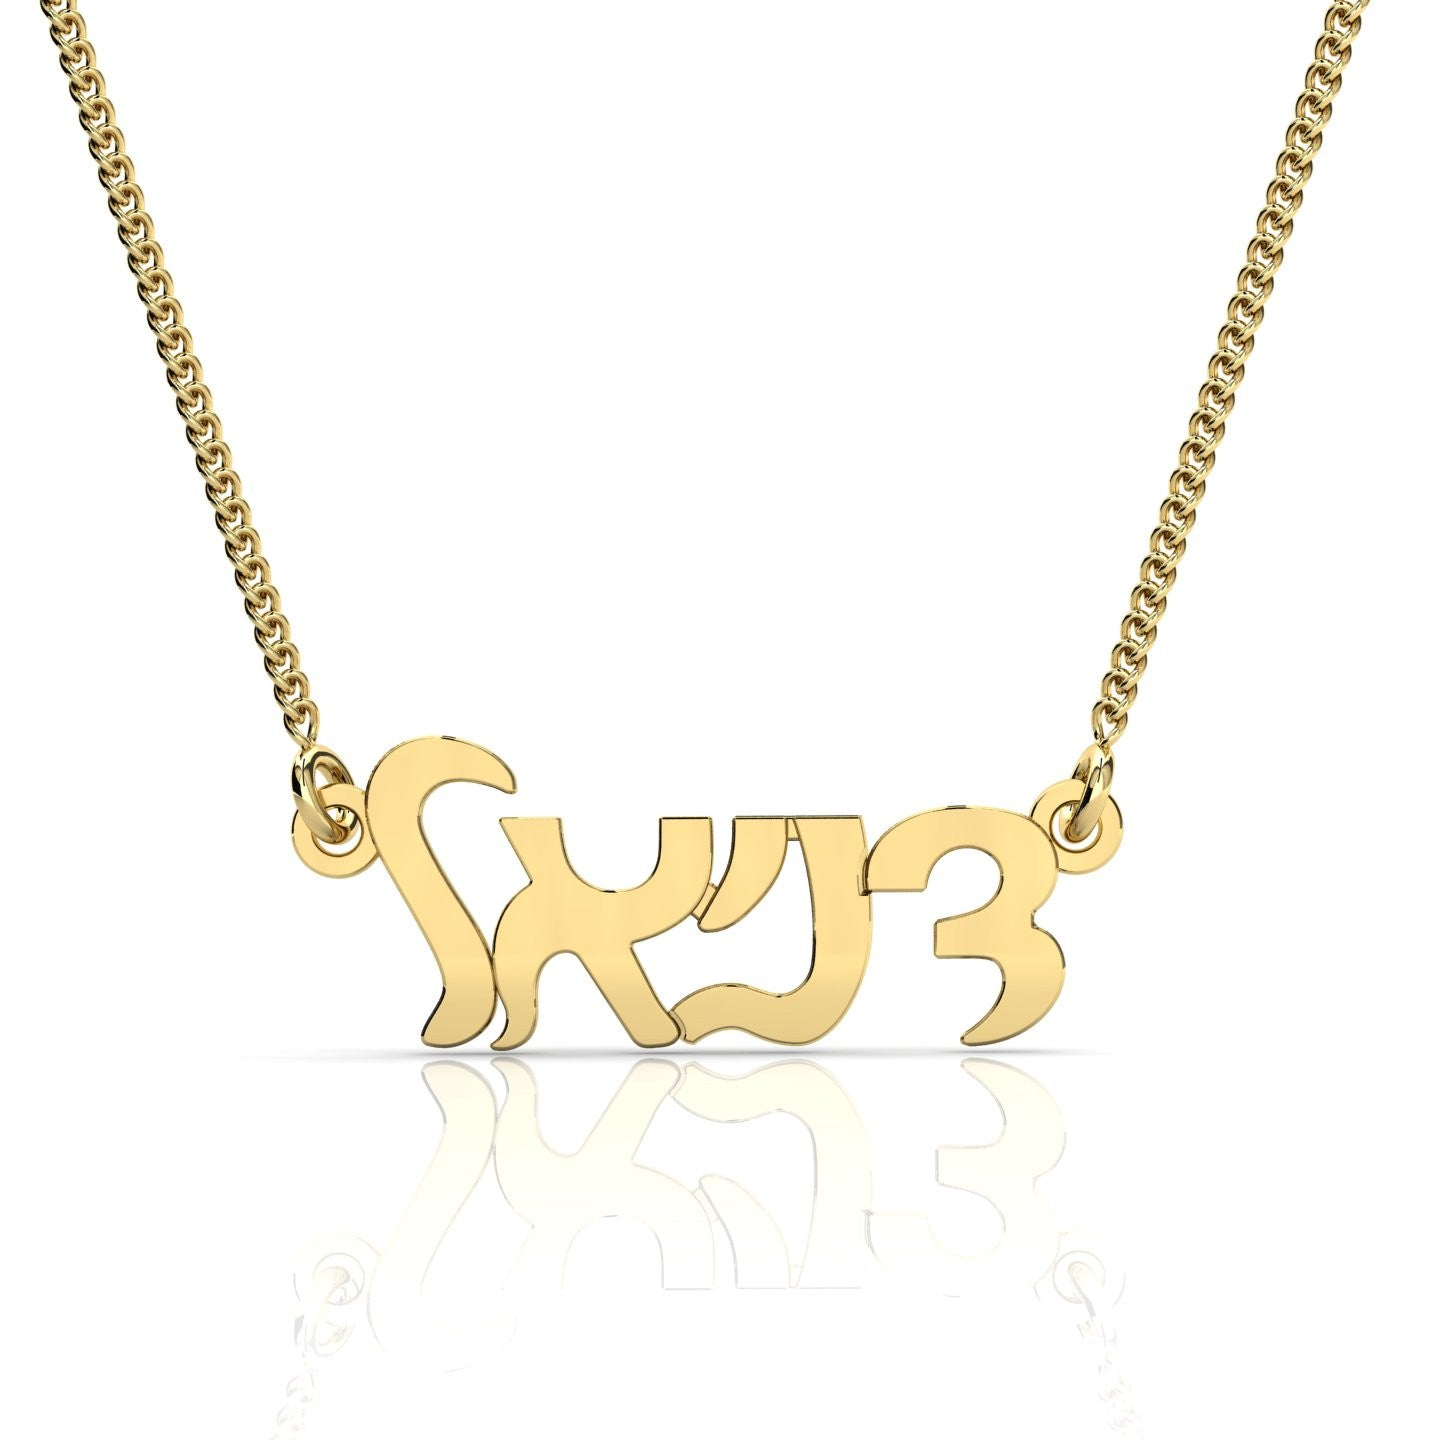 necklace solomon img name gold elisa pendant home jewellery jewelry necklaces